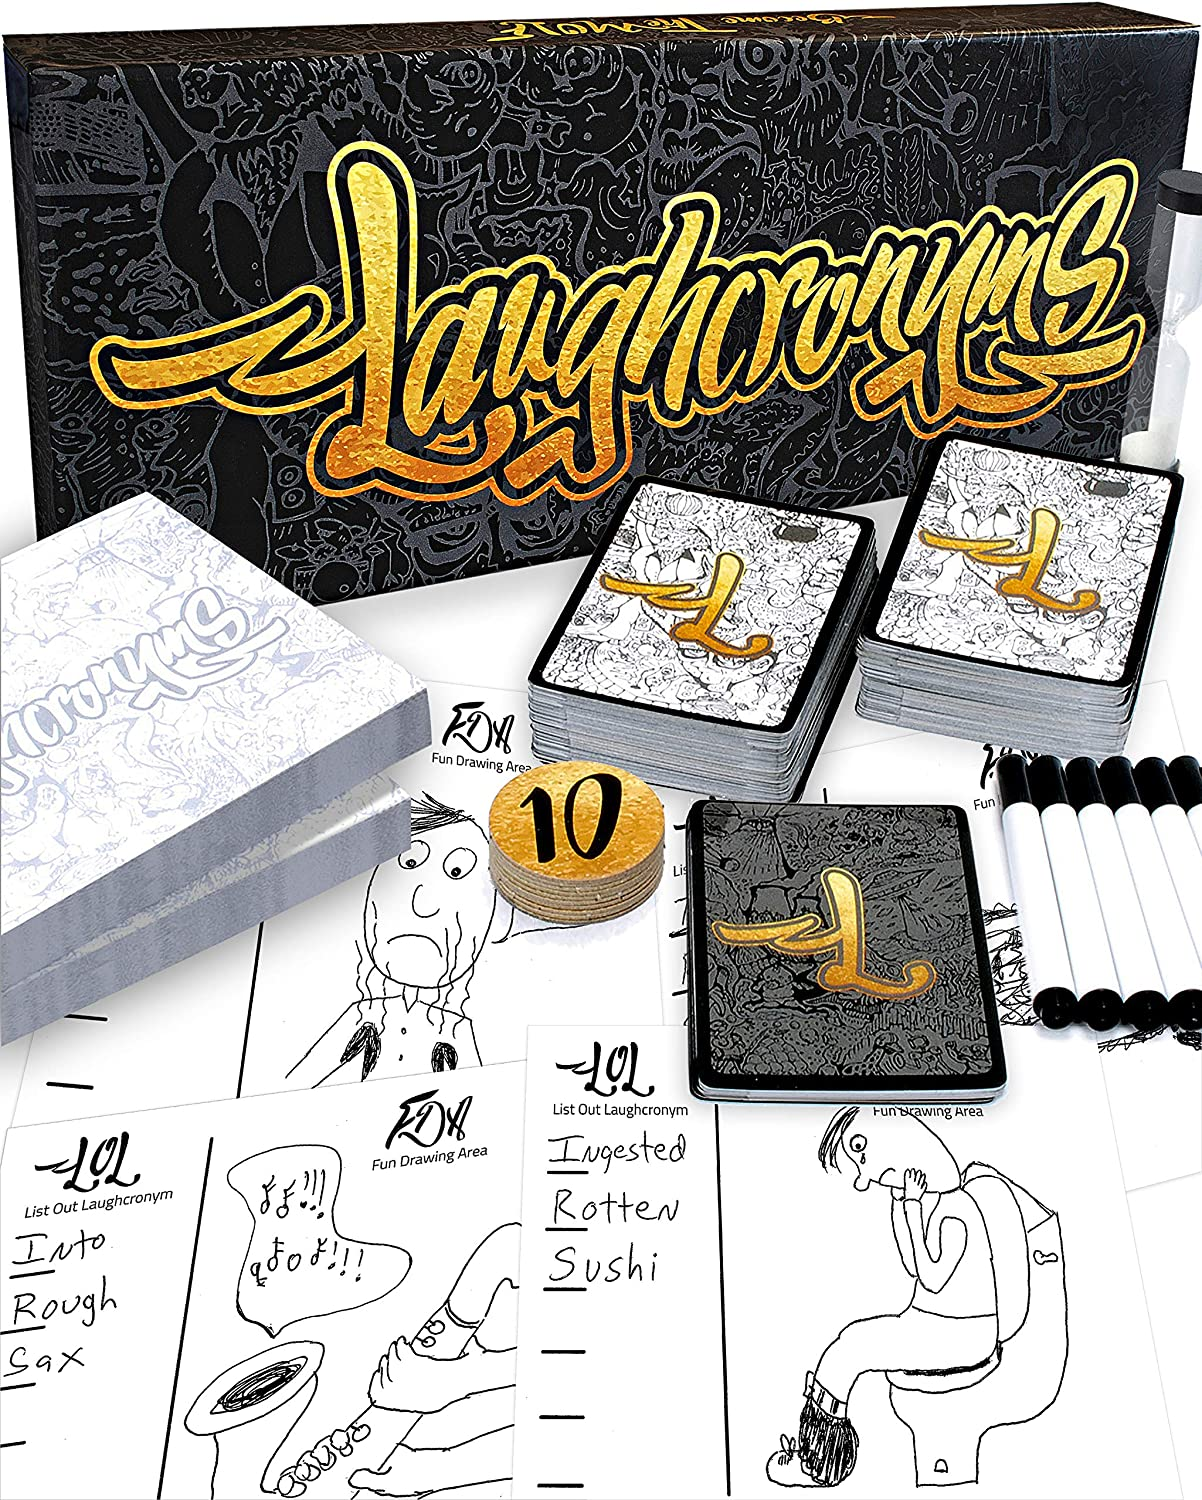 Laughcronyms - Hilarious New Party Game of Bad Drawings and Twisted Acronyms - for Adults or Families - Funny Adult Humor or Family Friendly Party Games